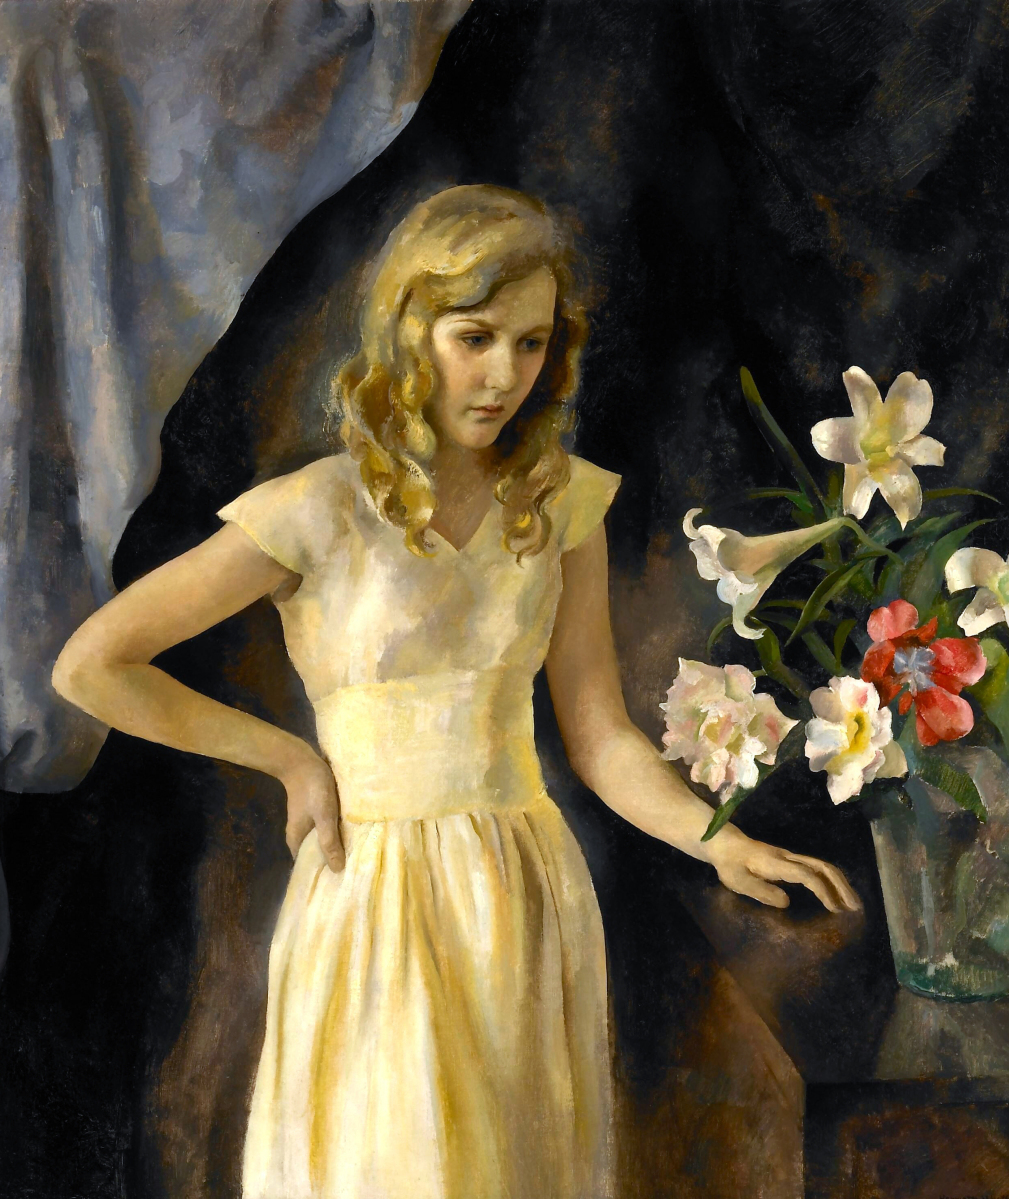 """Beulah Emmet"" by Henriette Wyeth, 1933. Oil on canvas, 46 by 40 inches. Courtesy Gerald Peters Gallery, Santa Fe, N.M."